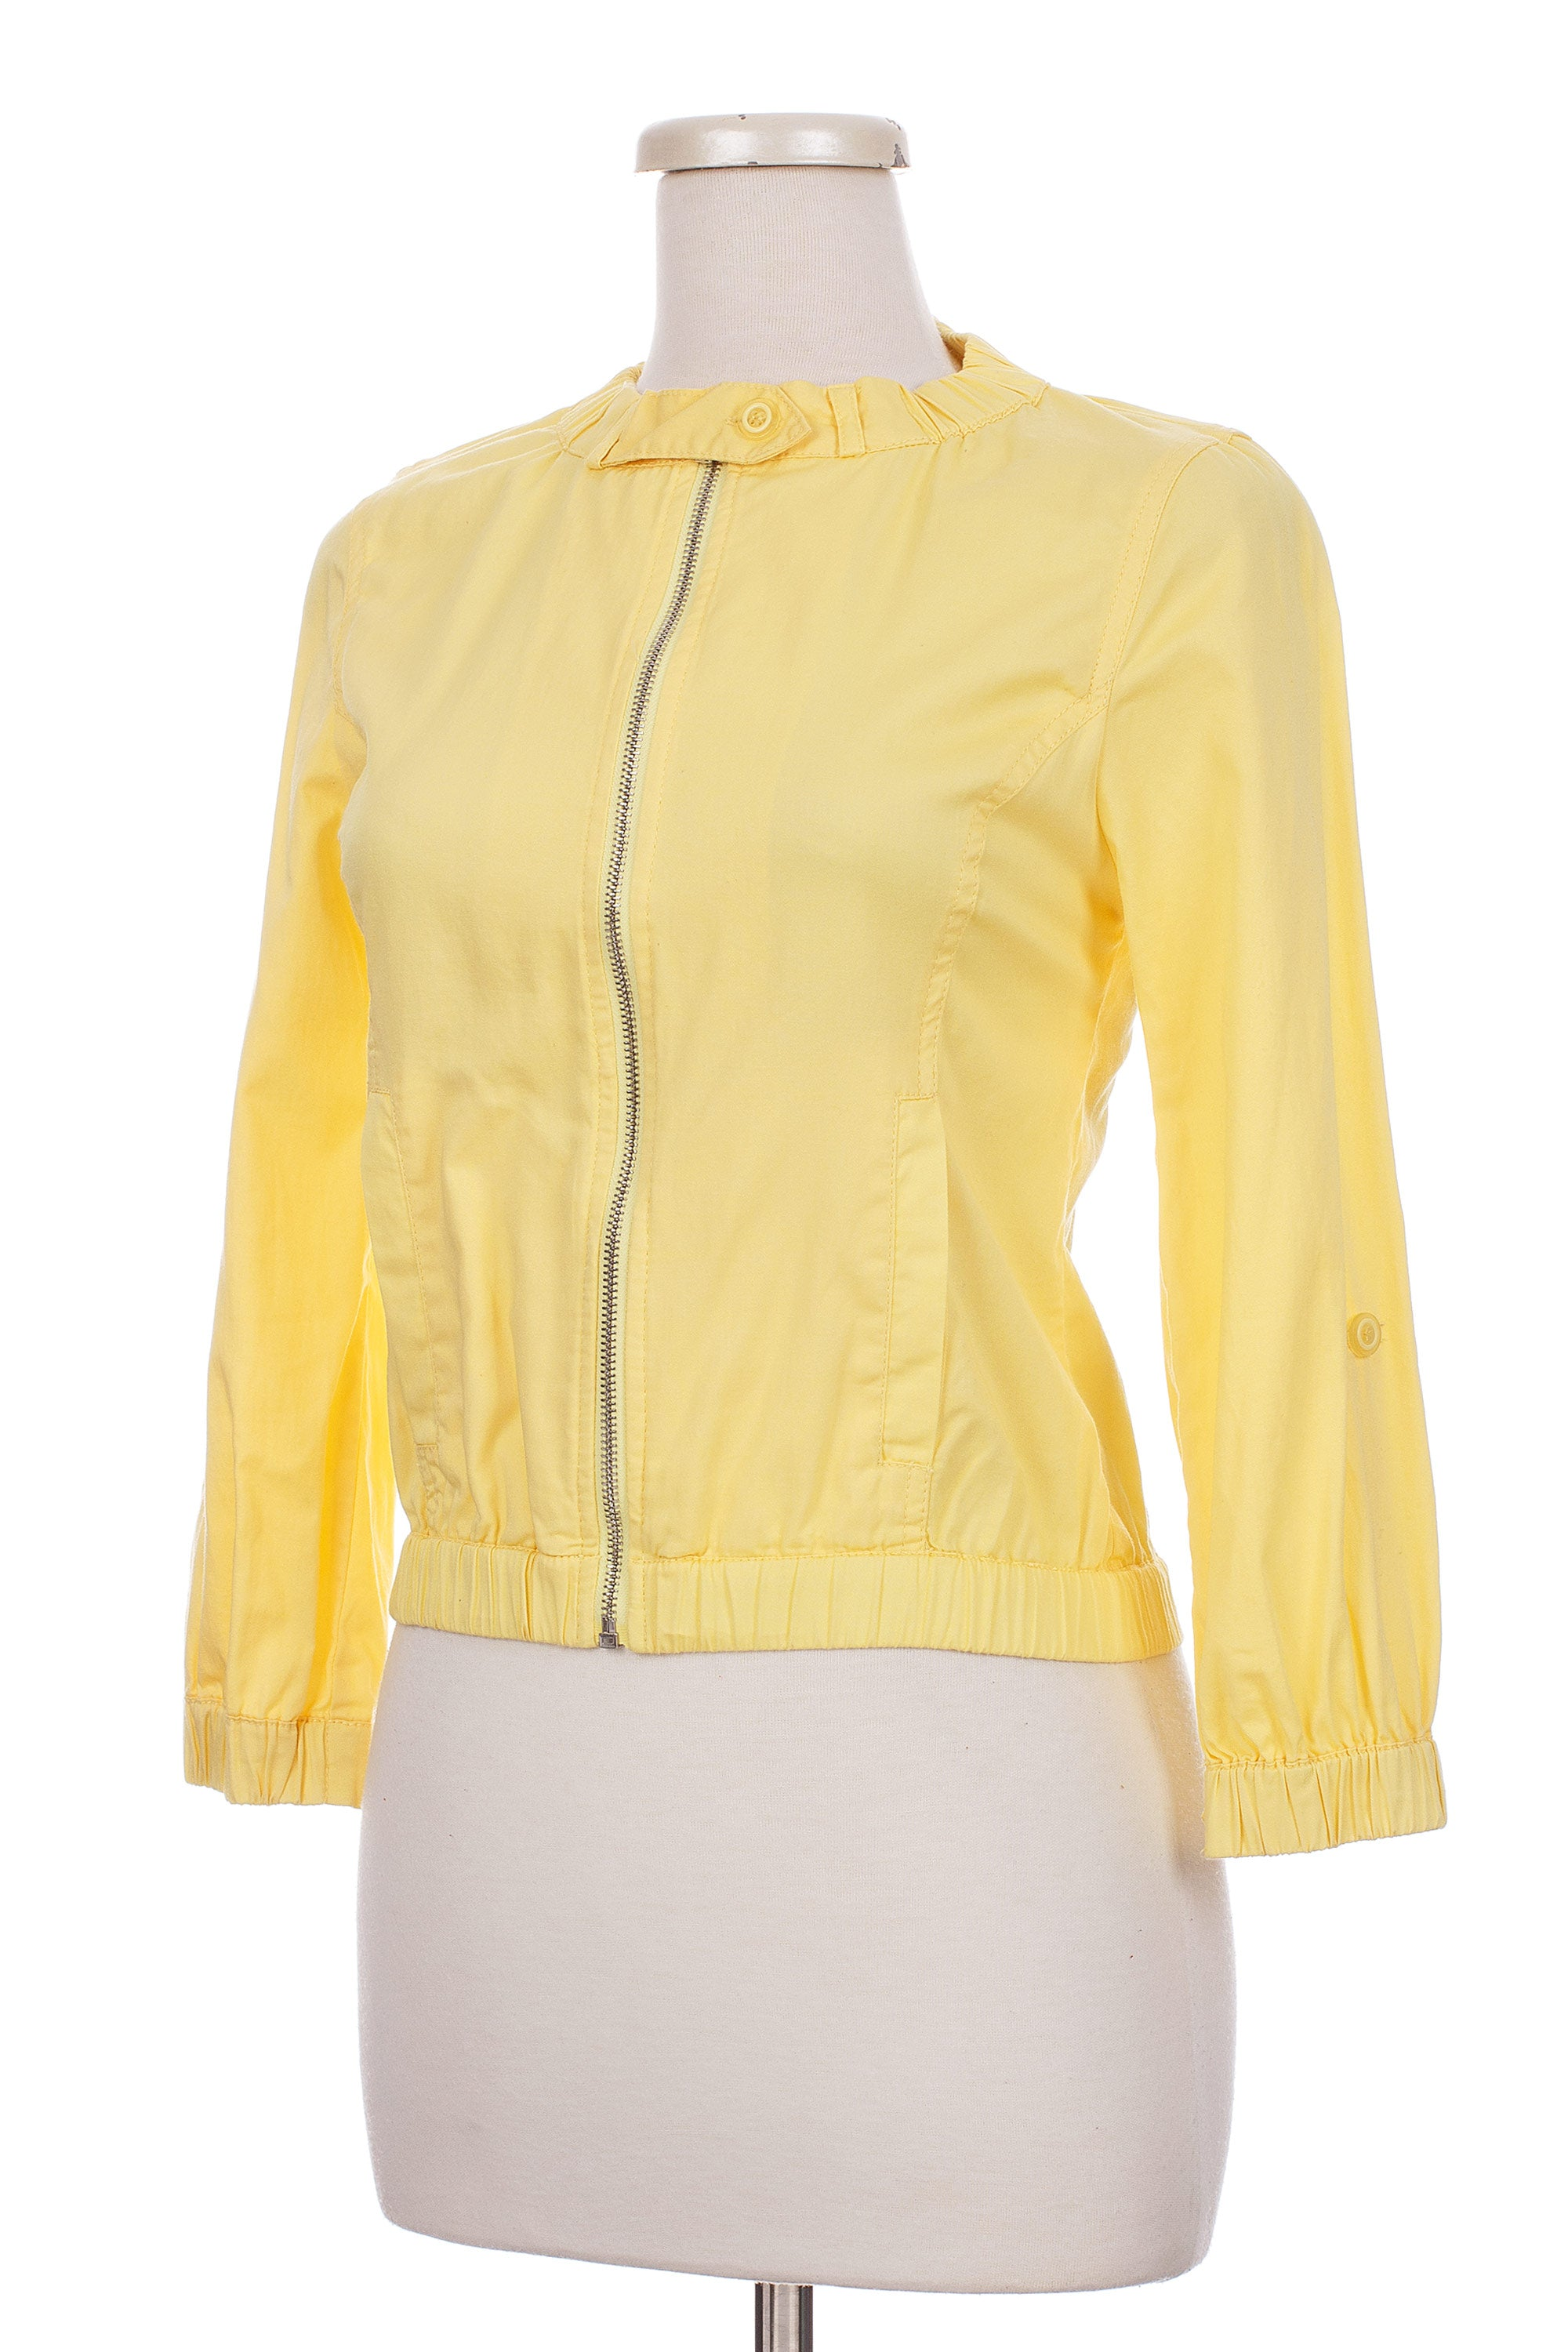 Type 1 Busy Bee Jacket